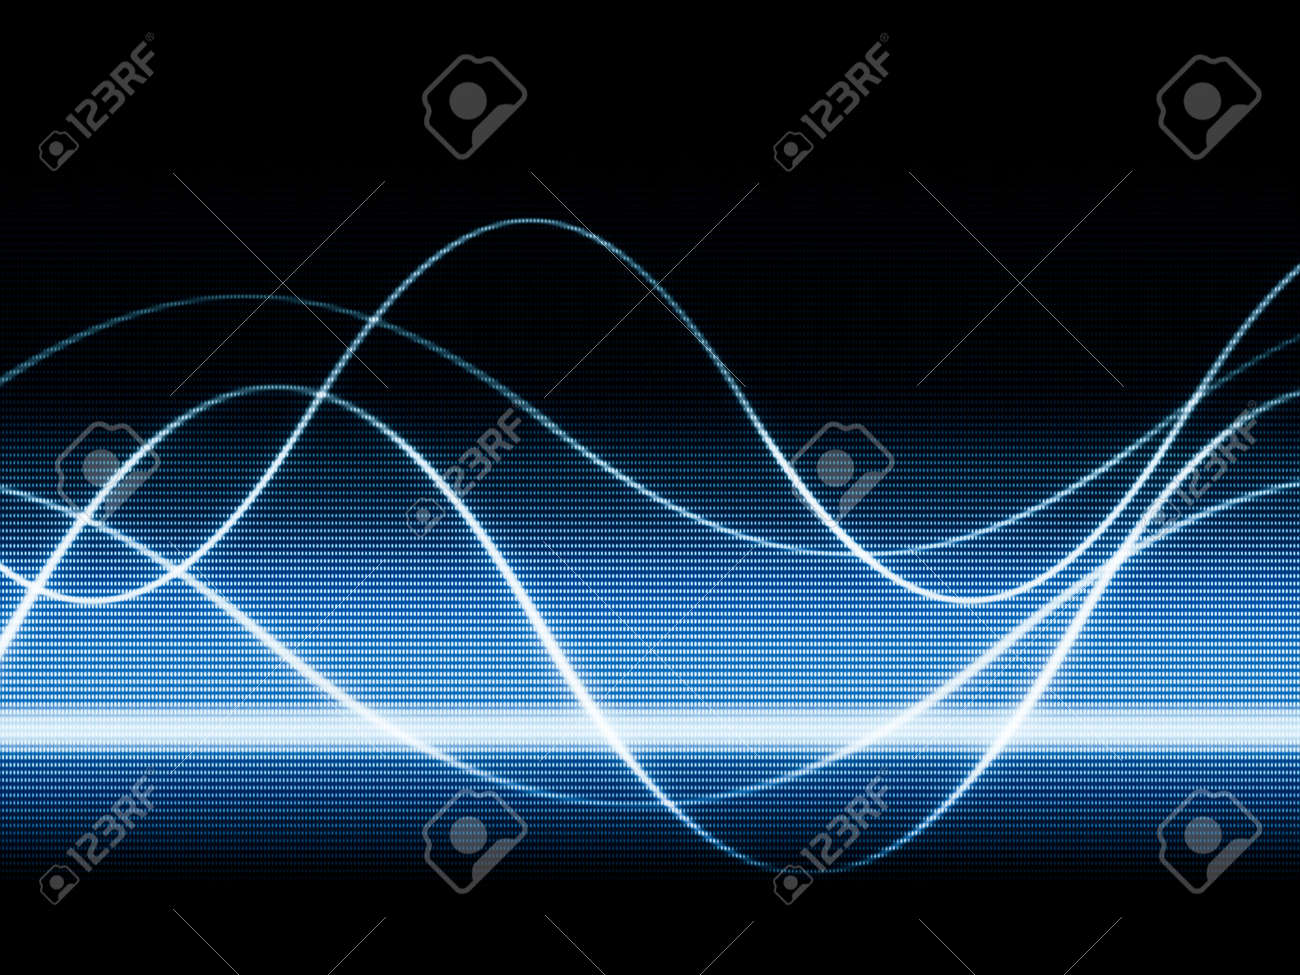 close up of blue monitor displaying sines curves Stock Photo - 9641806